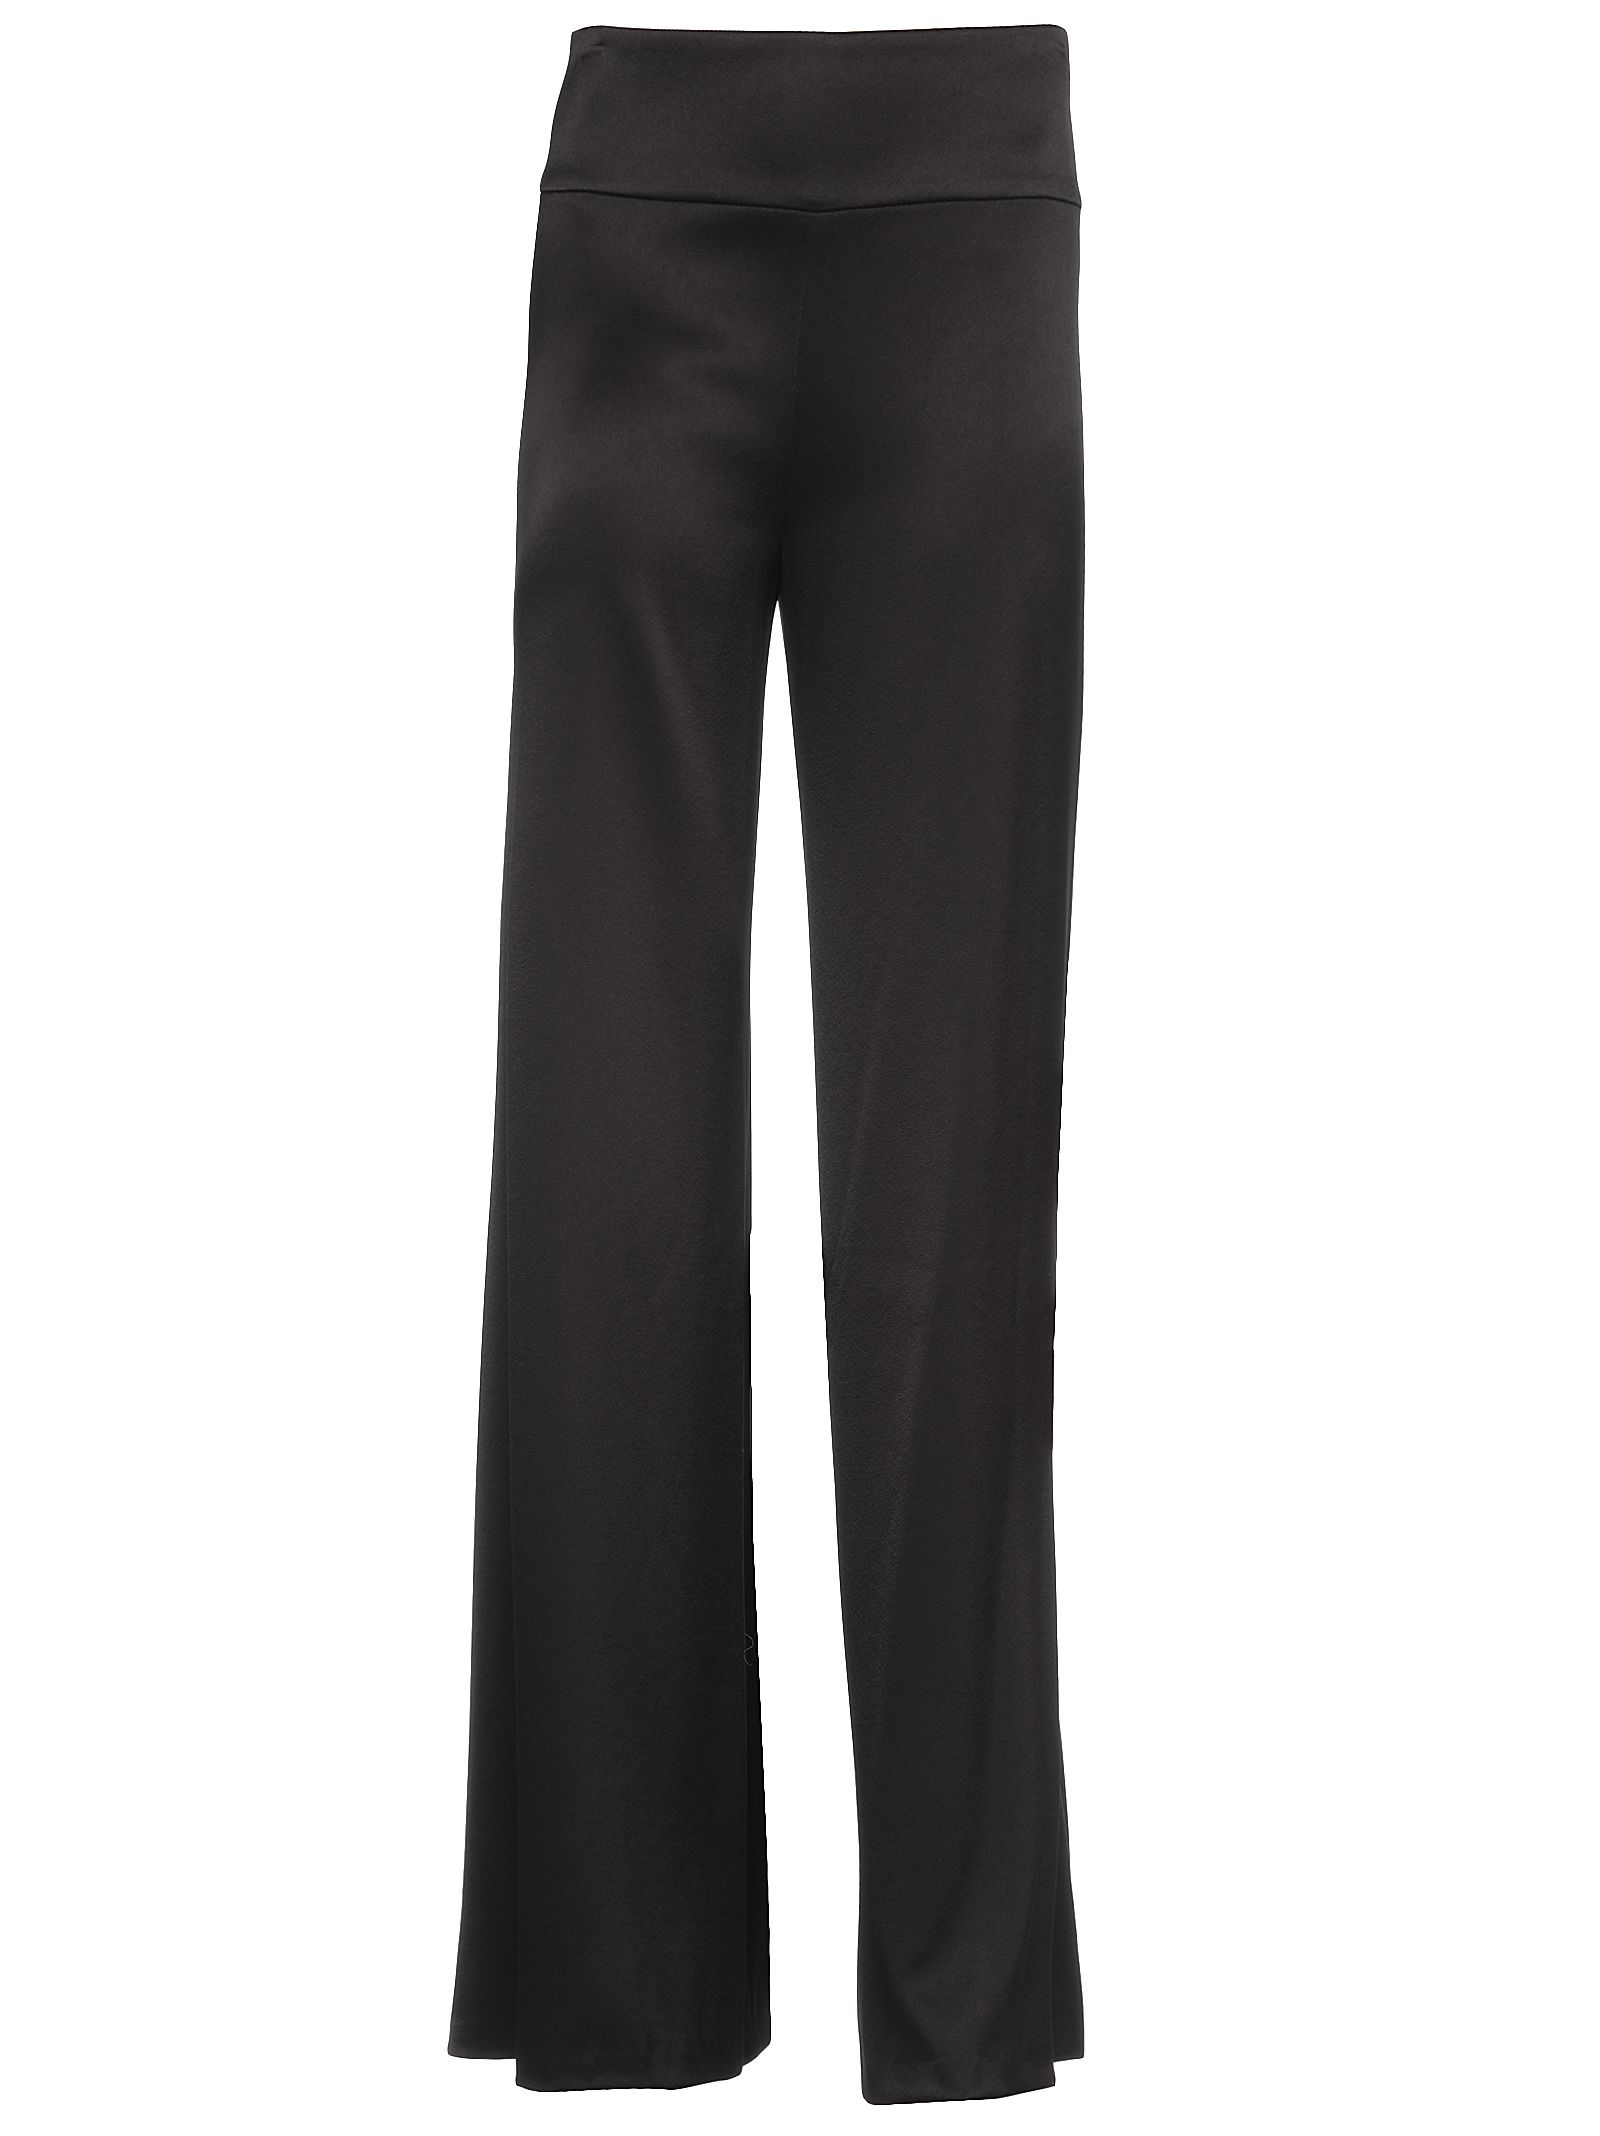 Alice + Olivia High Waist Trousers